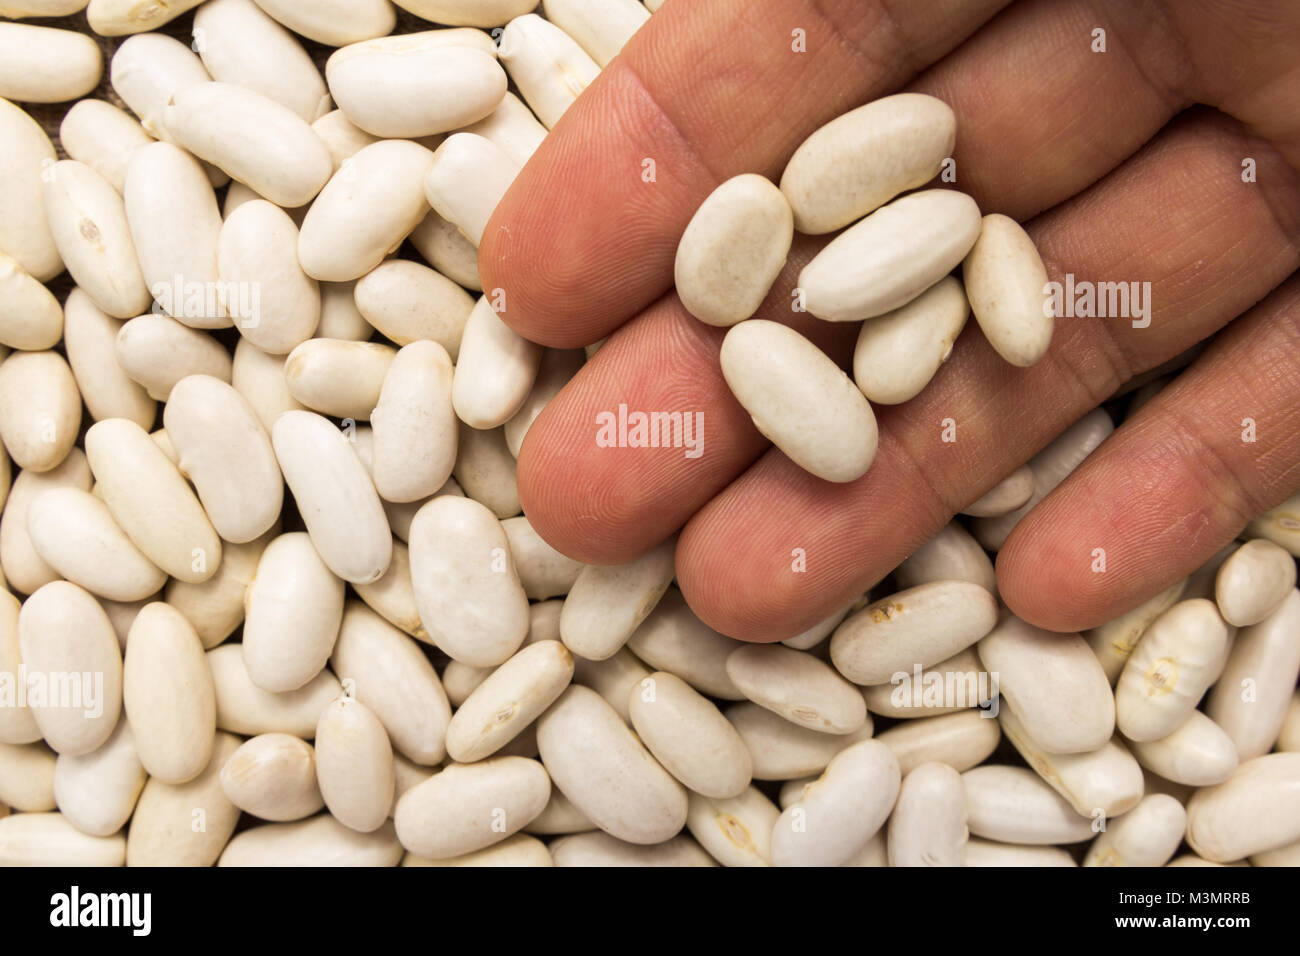 how to cook haricot beans